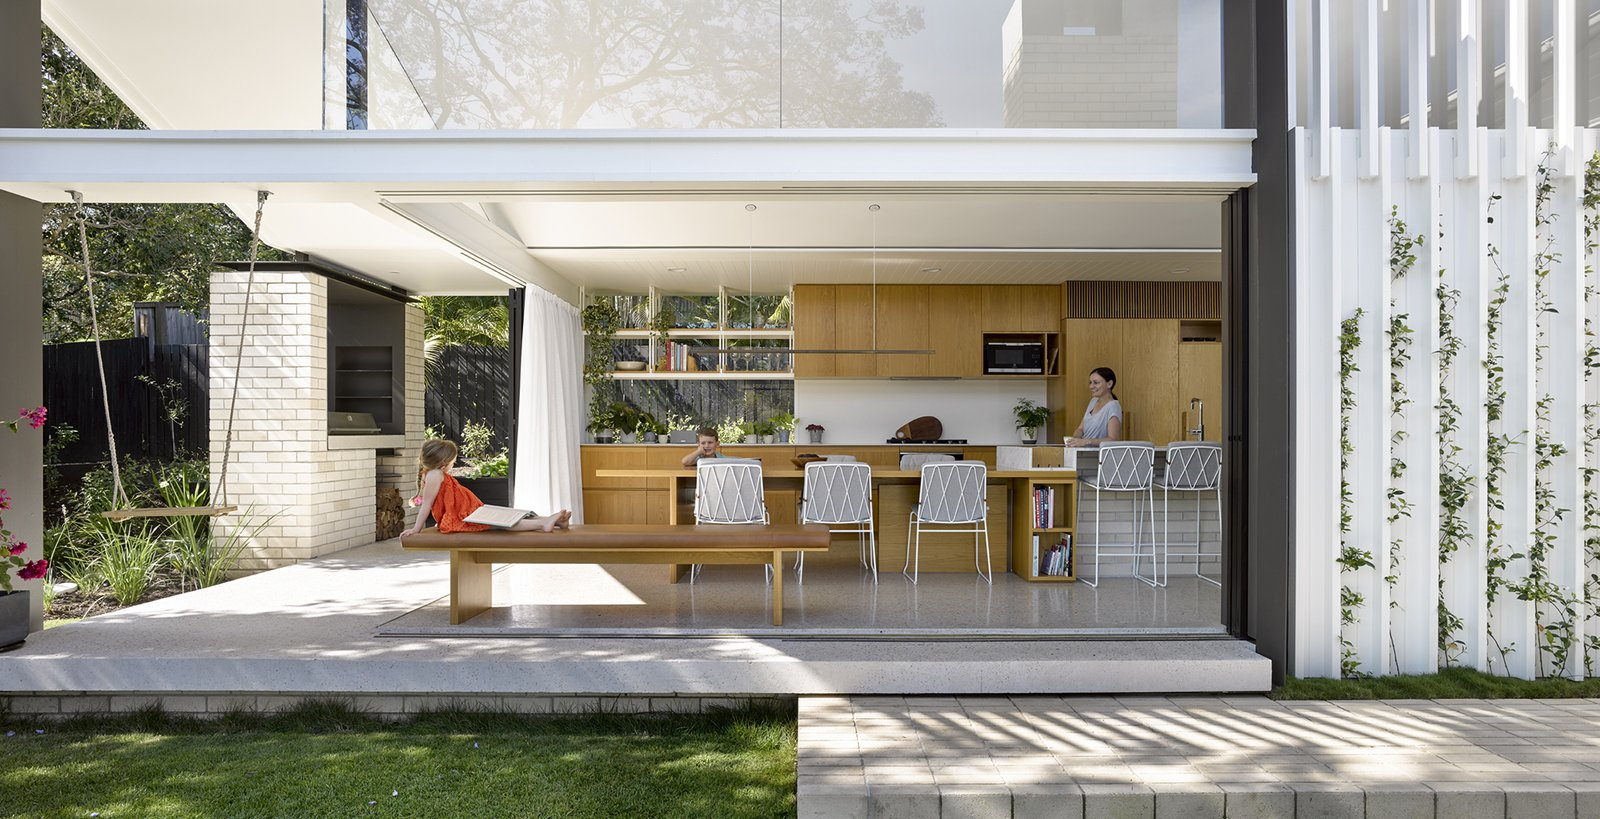 Kitchen, Ceiling Lighting, Microwave, Dishwasher, Limestone Floor, Drop In Sink, Wood Cabinet, Stone Slab Backsplashe, and Marble Counter  Photo 1 of 12 in An Architect Opens a 1920s Queenslander to the Great Outdoors